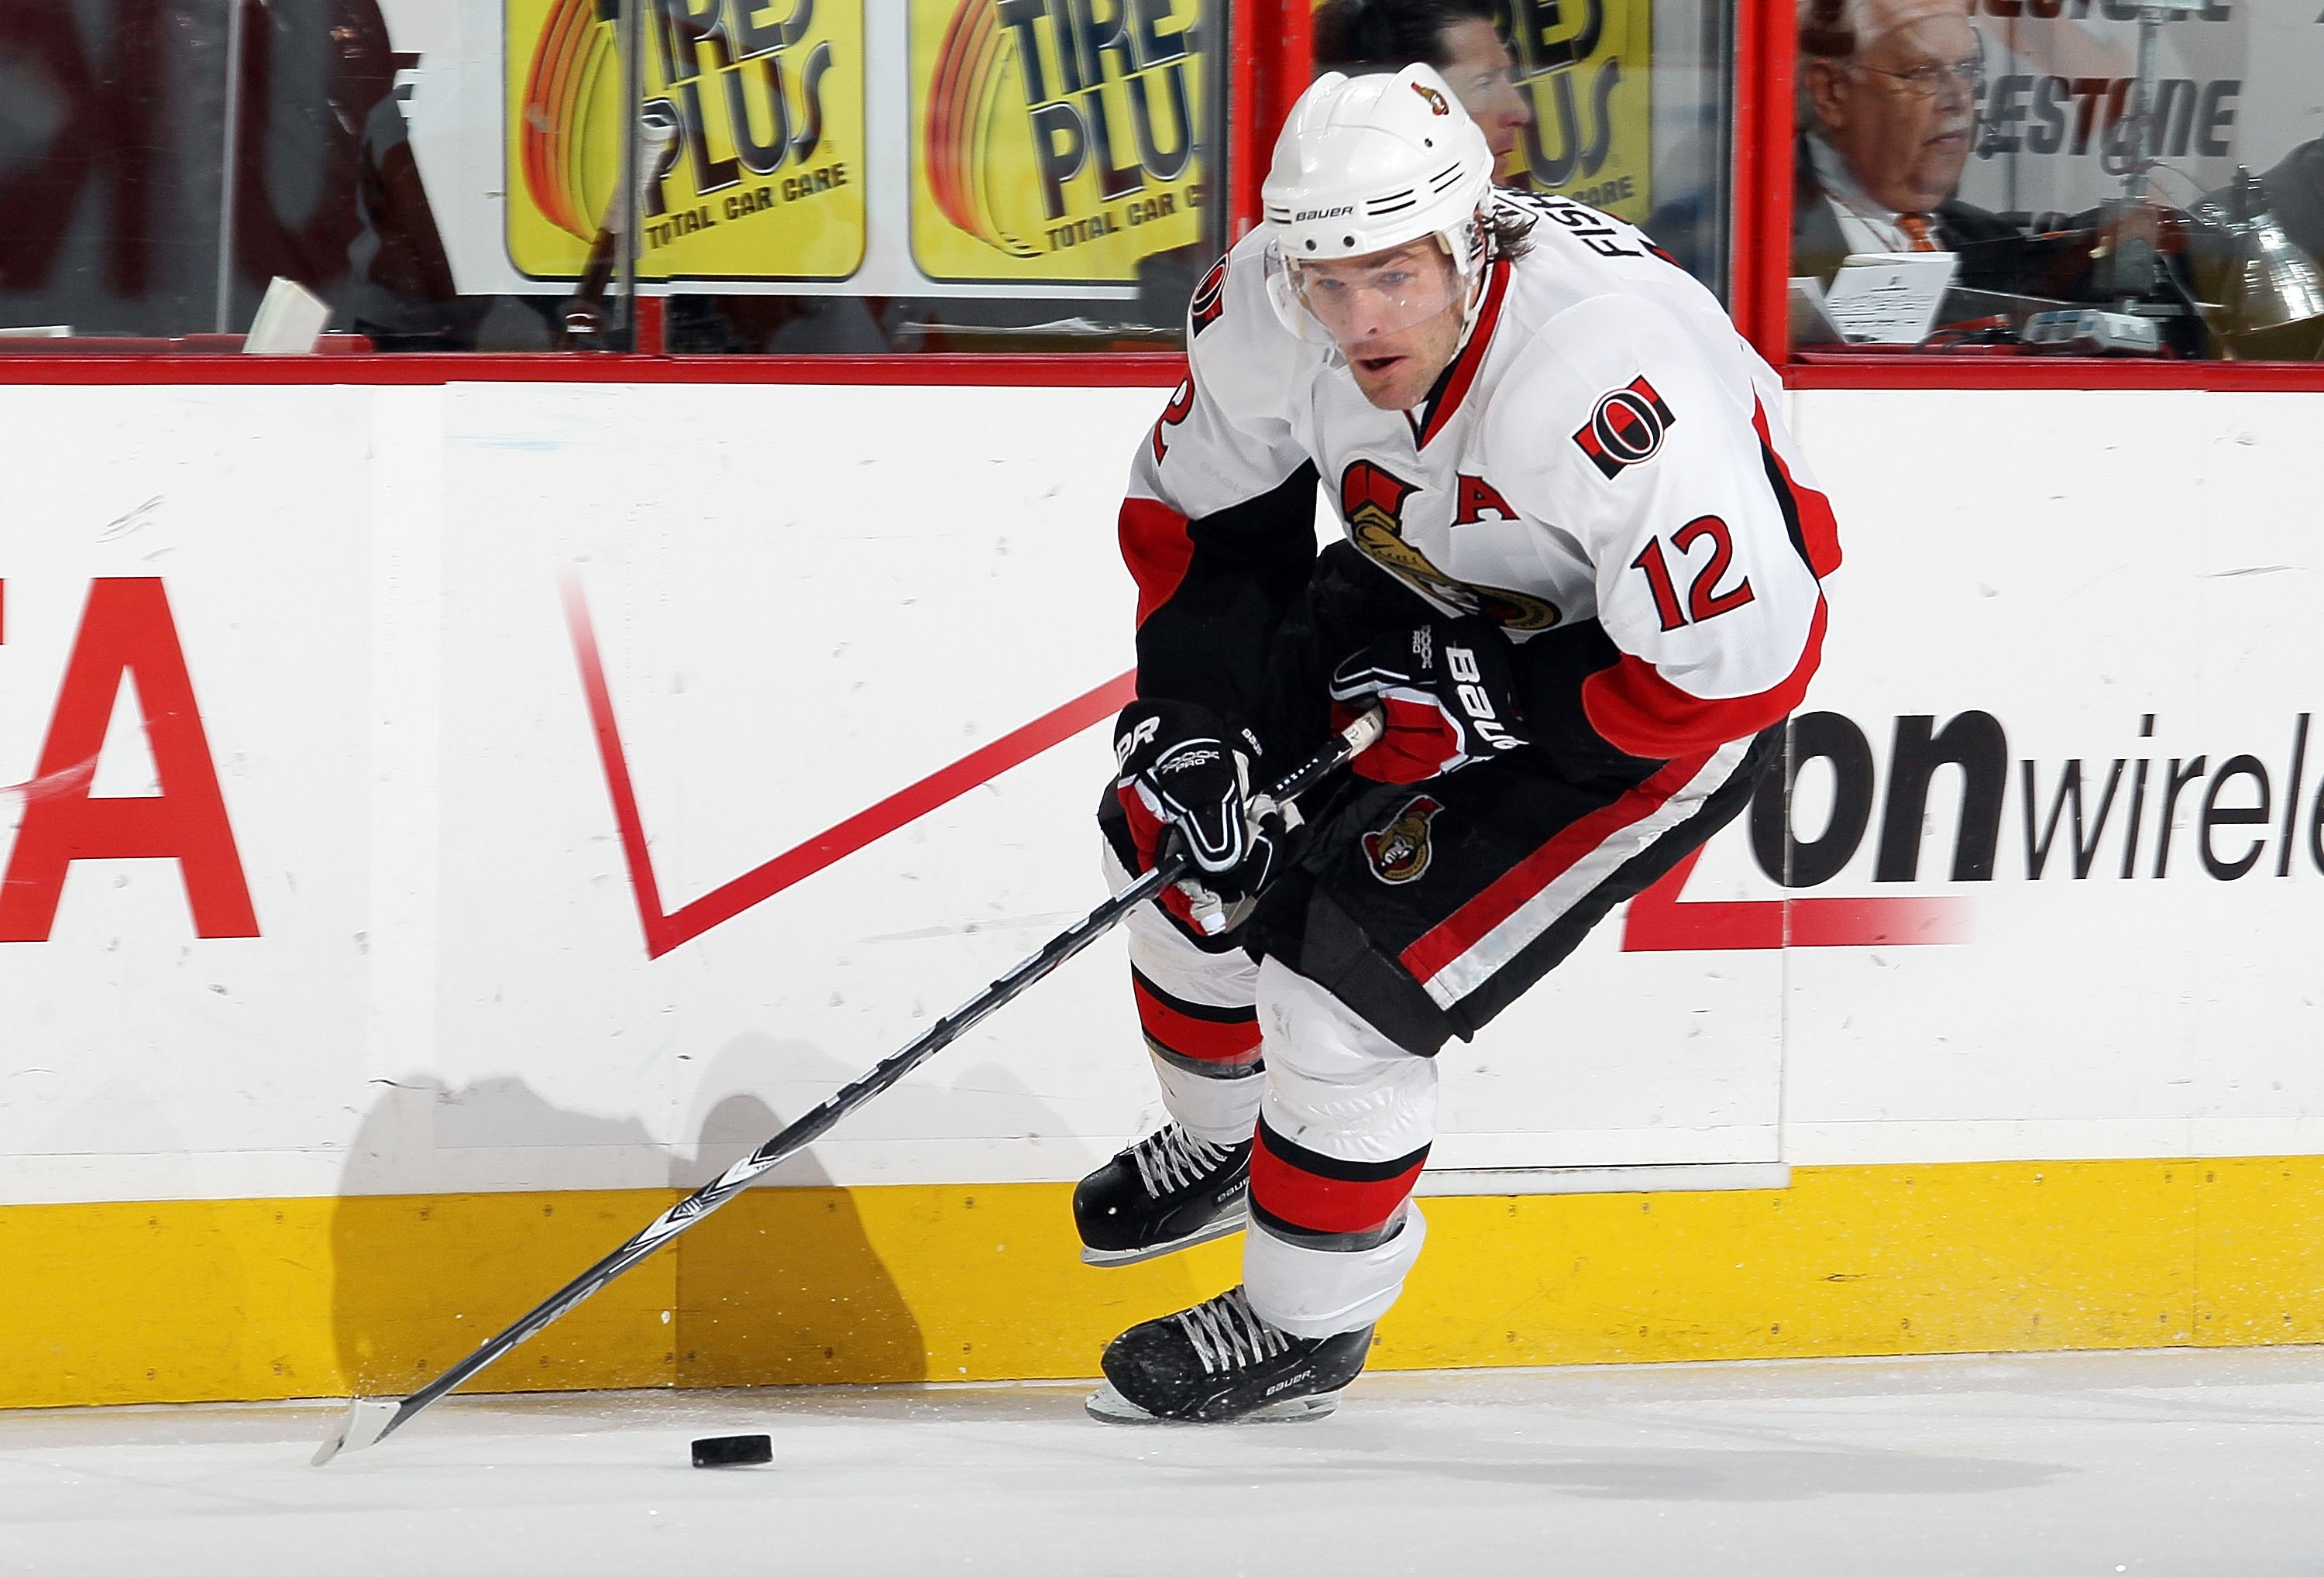 PHILADELPHIA, PA - JANUARY 20:  Mike Fisher #12 of the Ottawa Senators skates against the Philadelphia Flyers on January 20, 2011 at Wells Fargo Center in Philadelphia, Pennsylvania.  (Photo by Jim McIsaac/Getty Images)